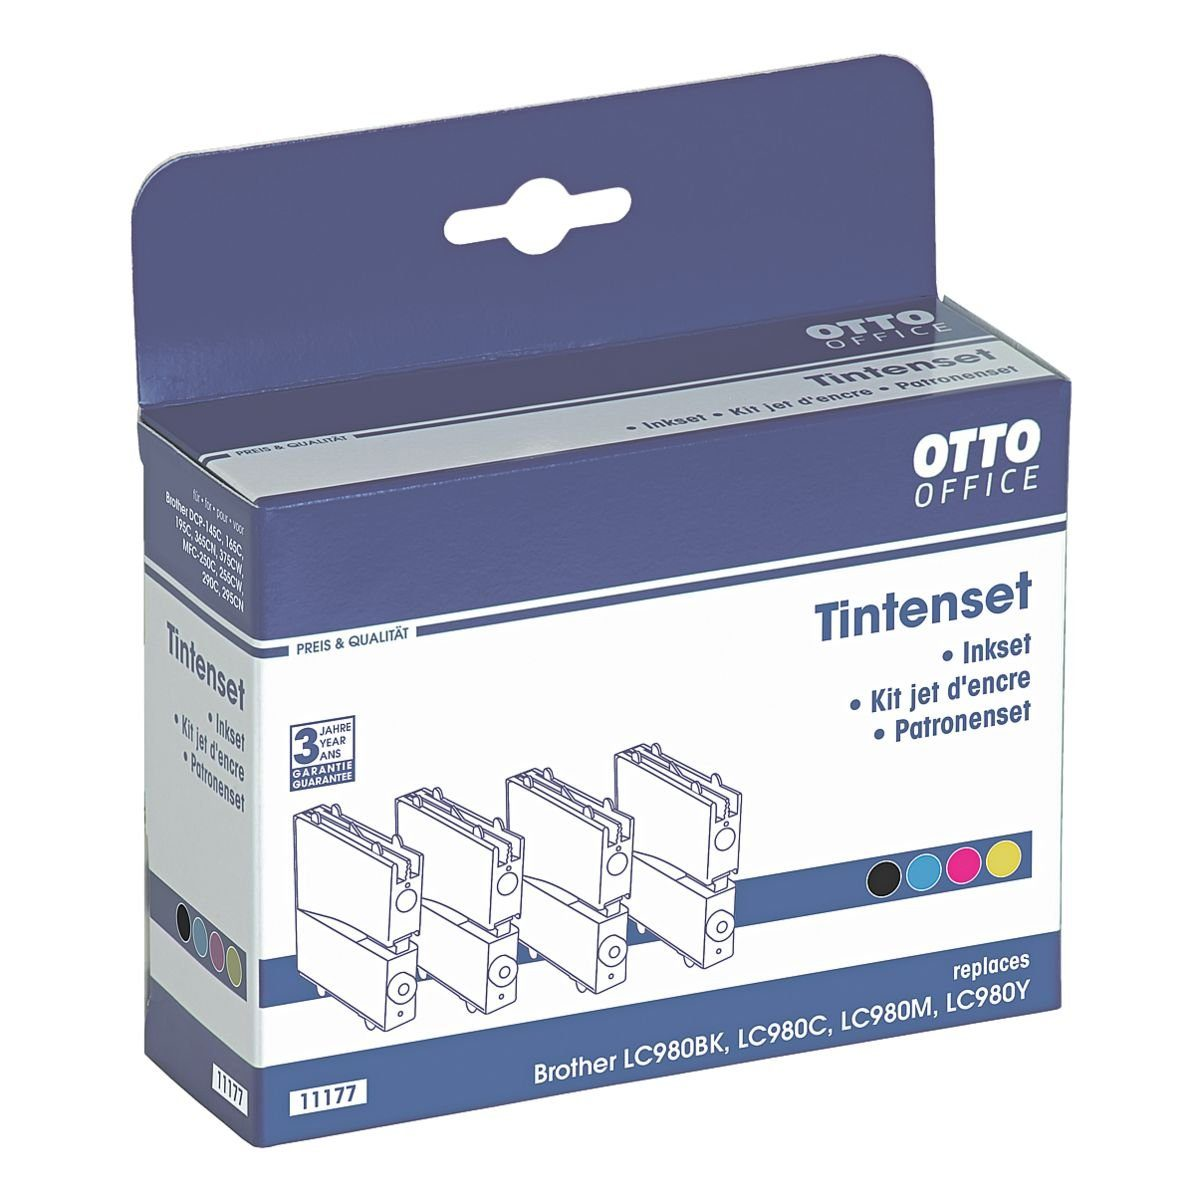 OTTO Office Standard Tintenpatronen-Set ersetzt Brother »LC-980«